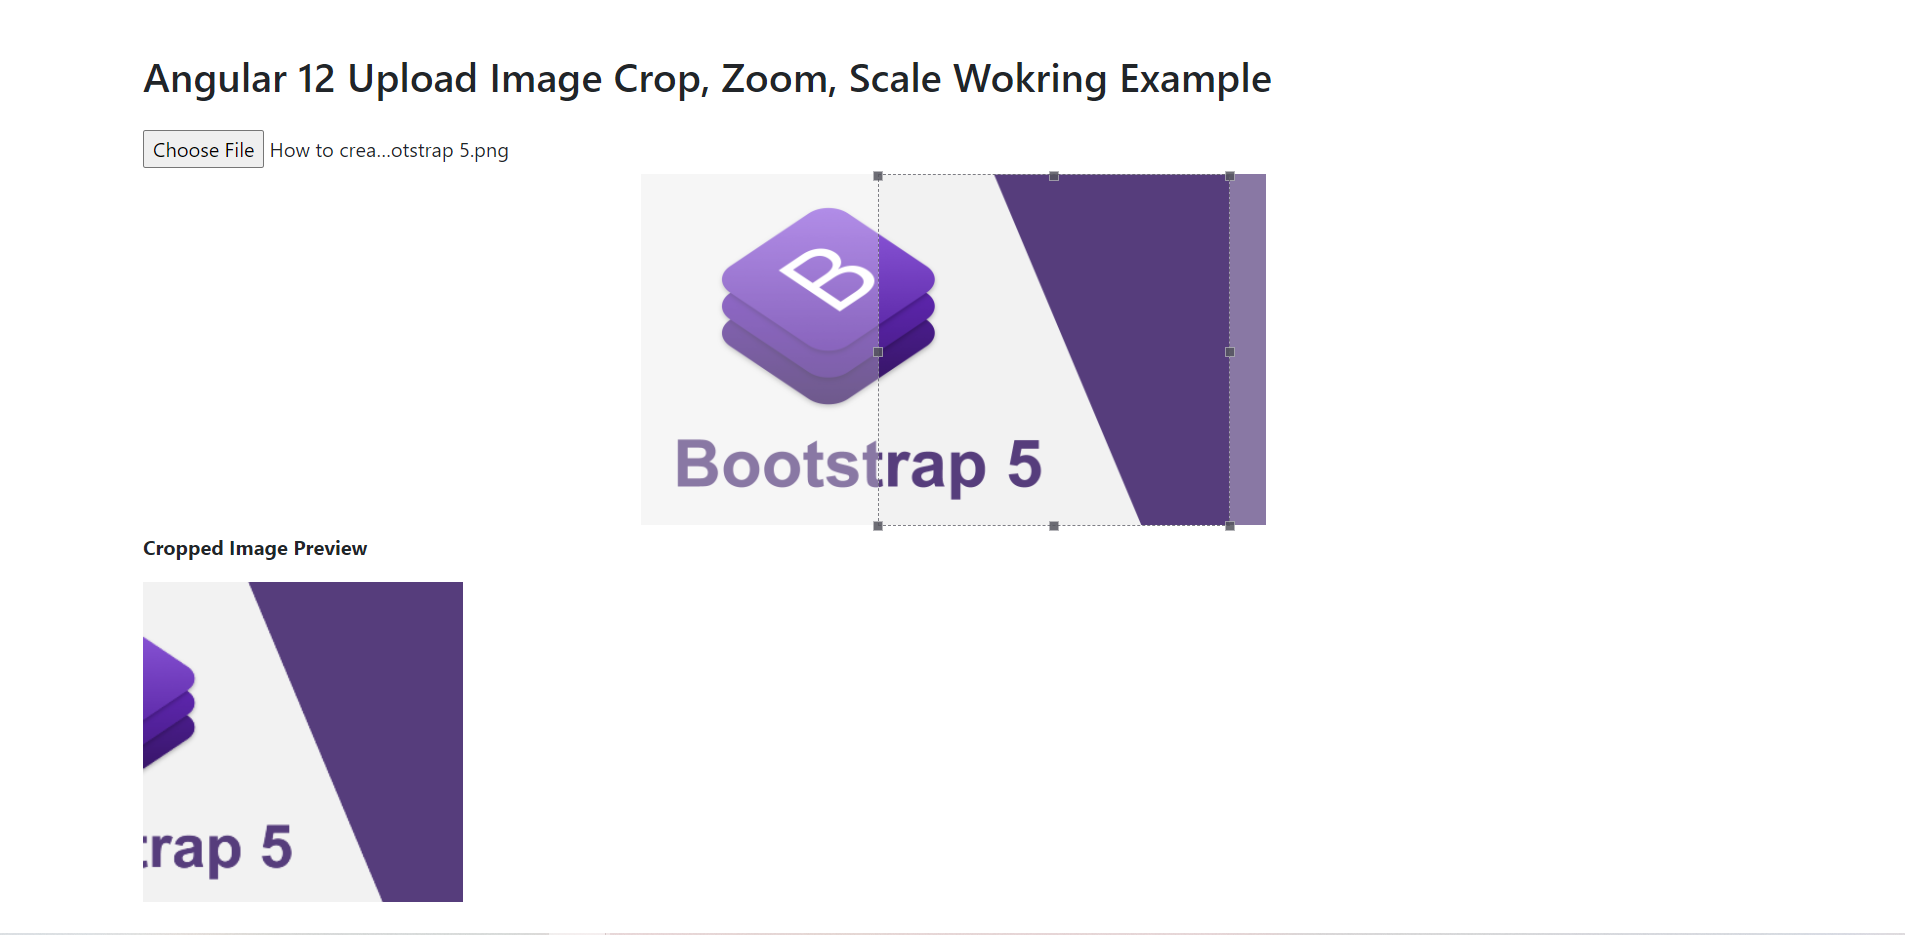 Angular 12 Bootstrap 5 Image Crop, Zoom, Scale Working Functionality